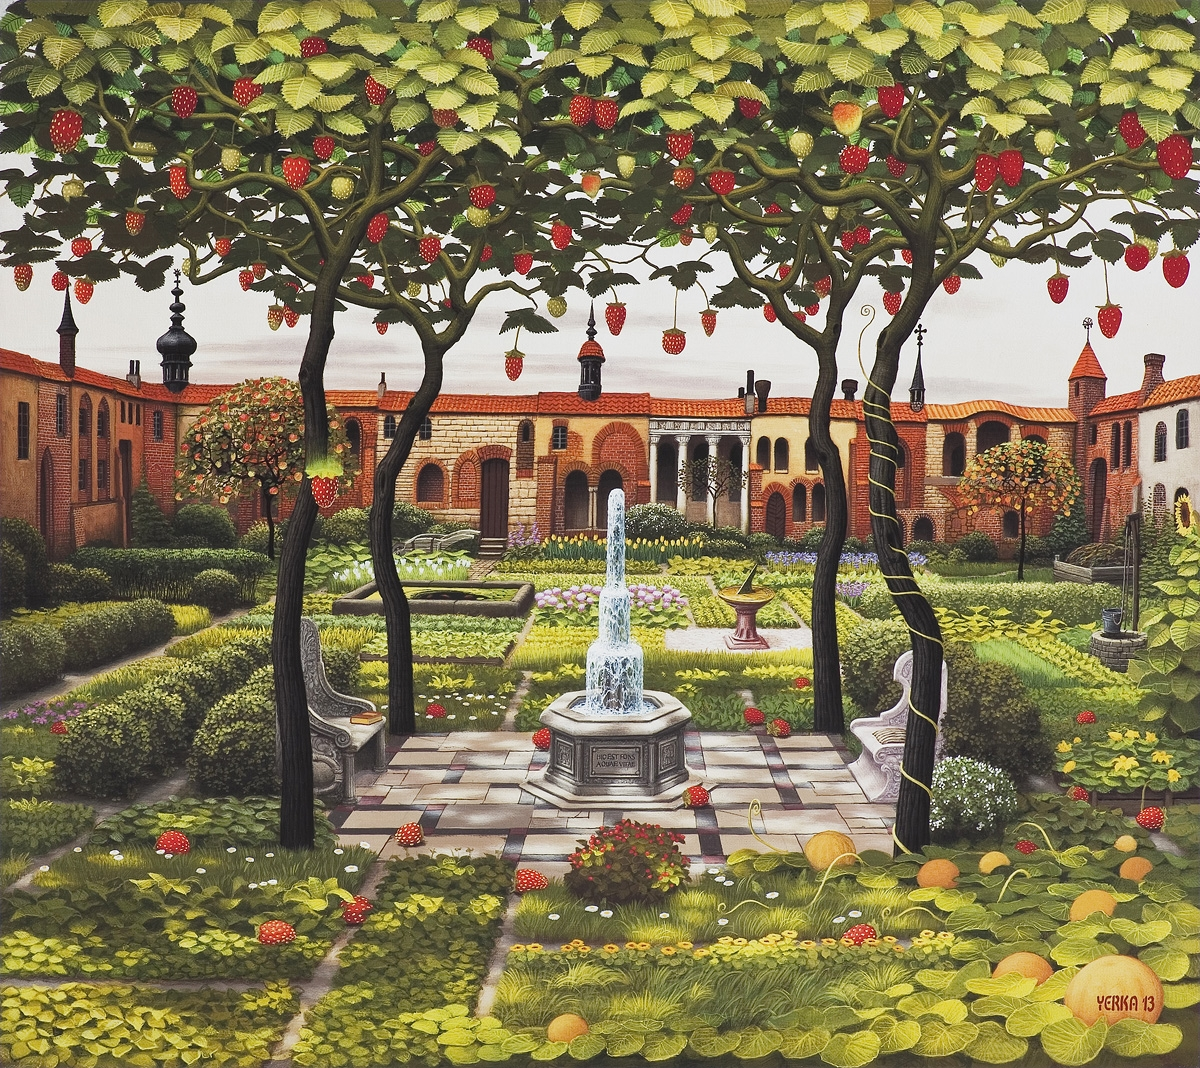 07-Strawberry-Patio-Jacek-Yerka-Surrealism-in-Dreamlike-Oil-Paintings-www-designstack-co